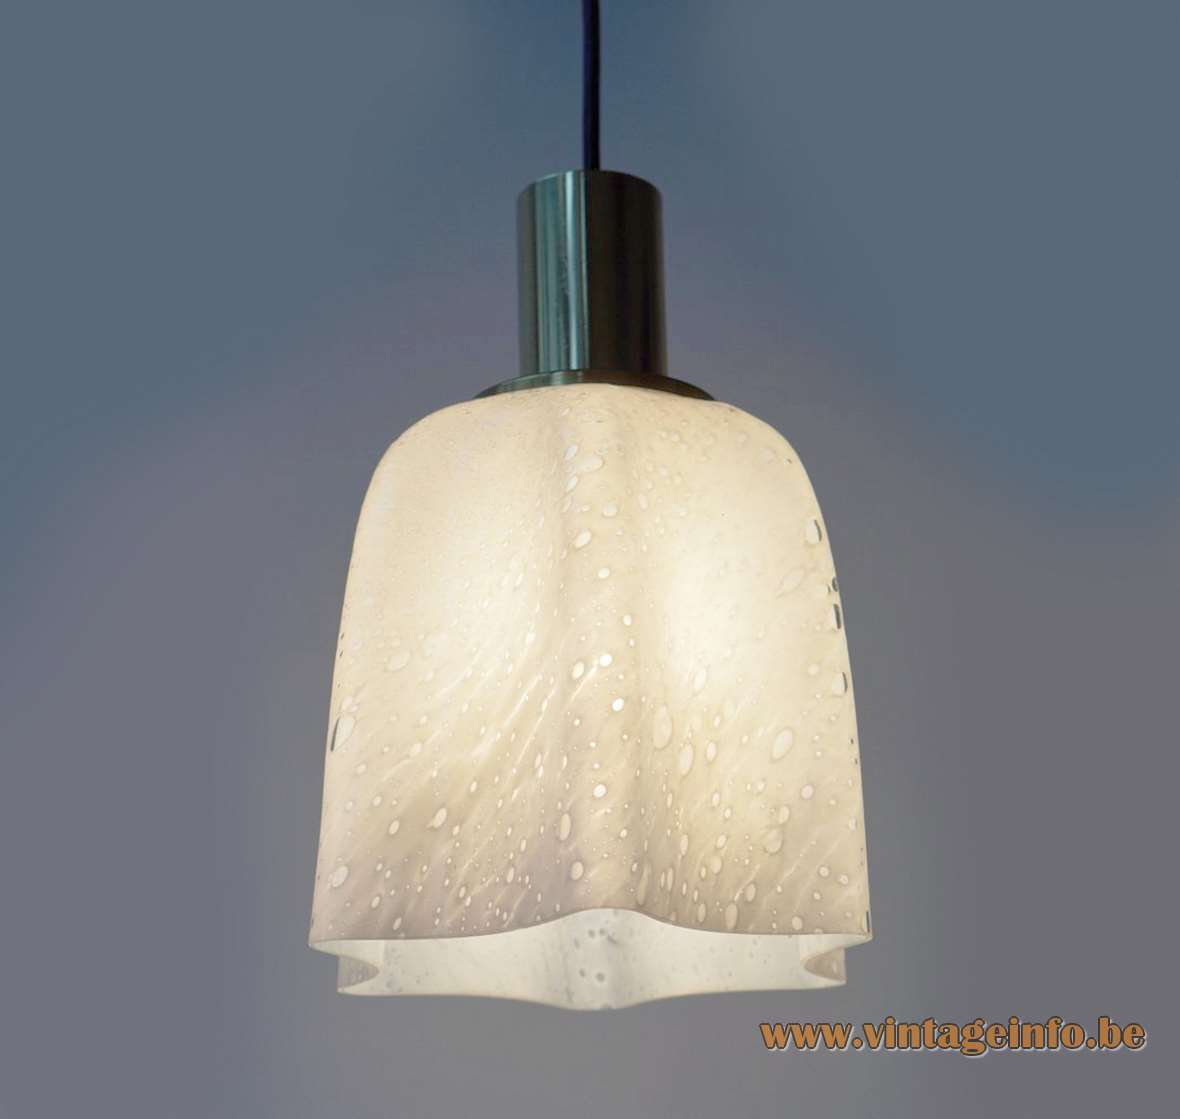 Doria 1970s fazzoletto handkerchief pendant lamp hand blown opal bubble glass brass Germany